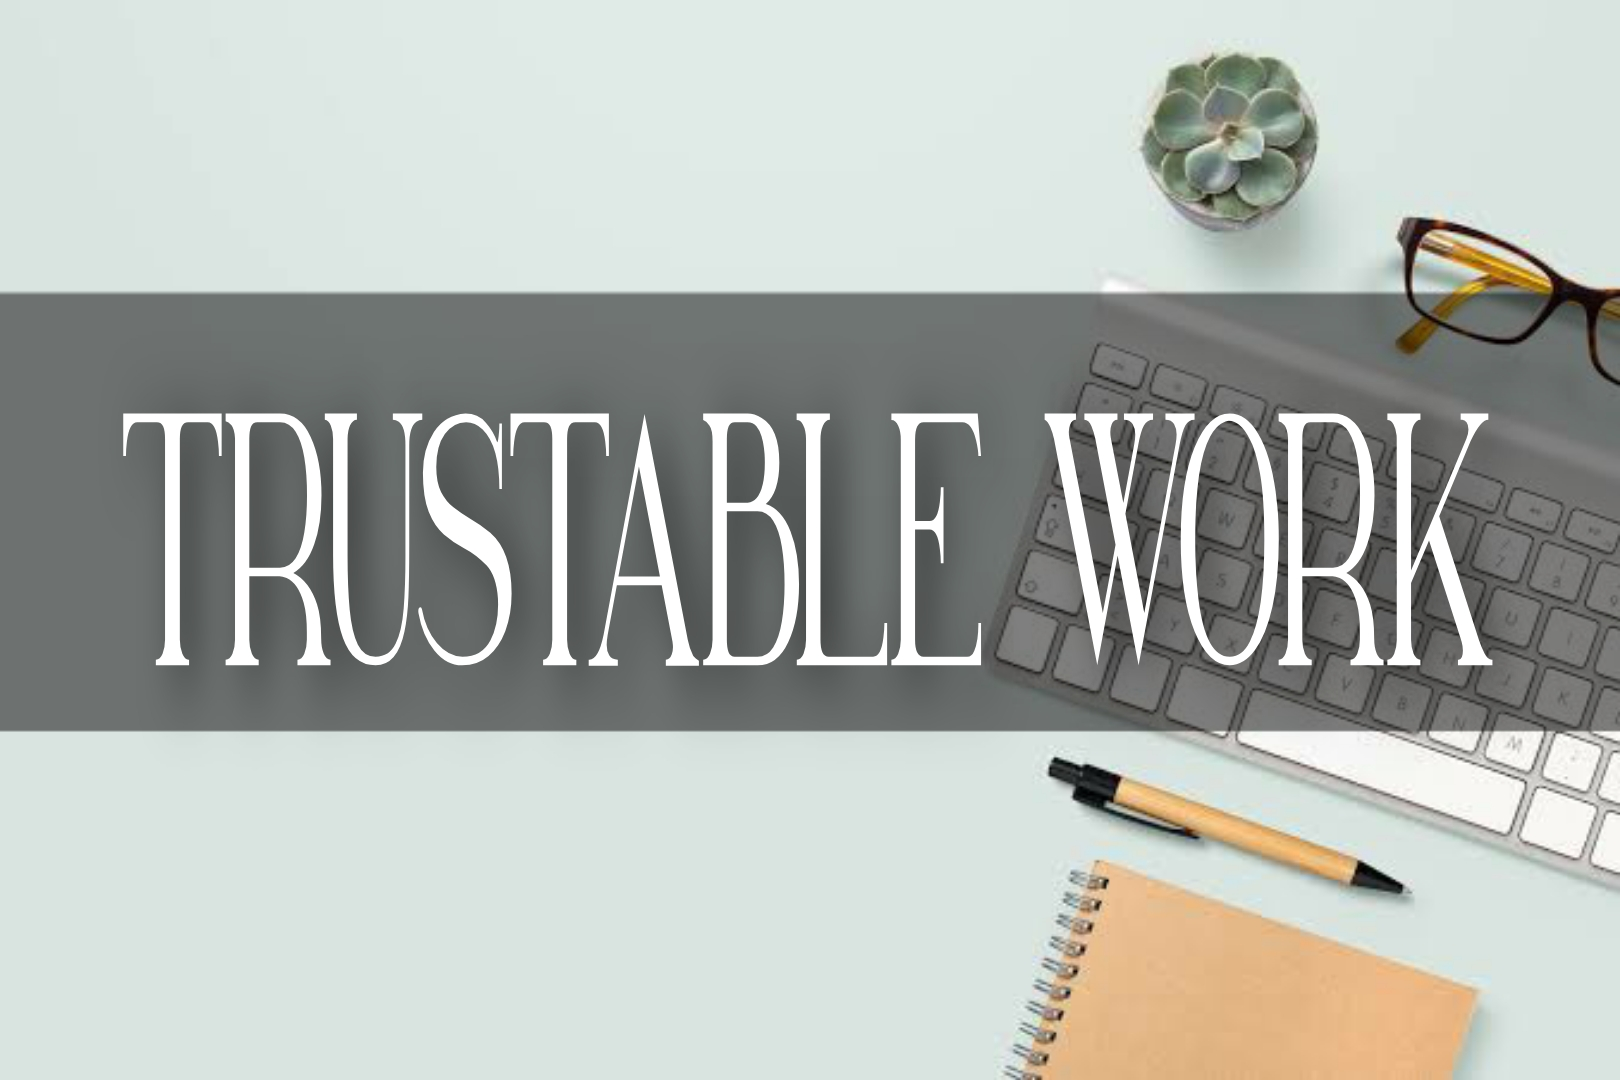 I Will Compose 1000+ words 100% Unique Article/Content on any topic.